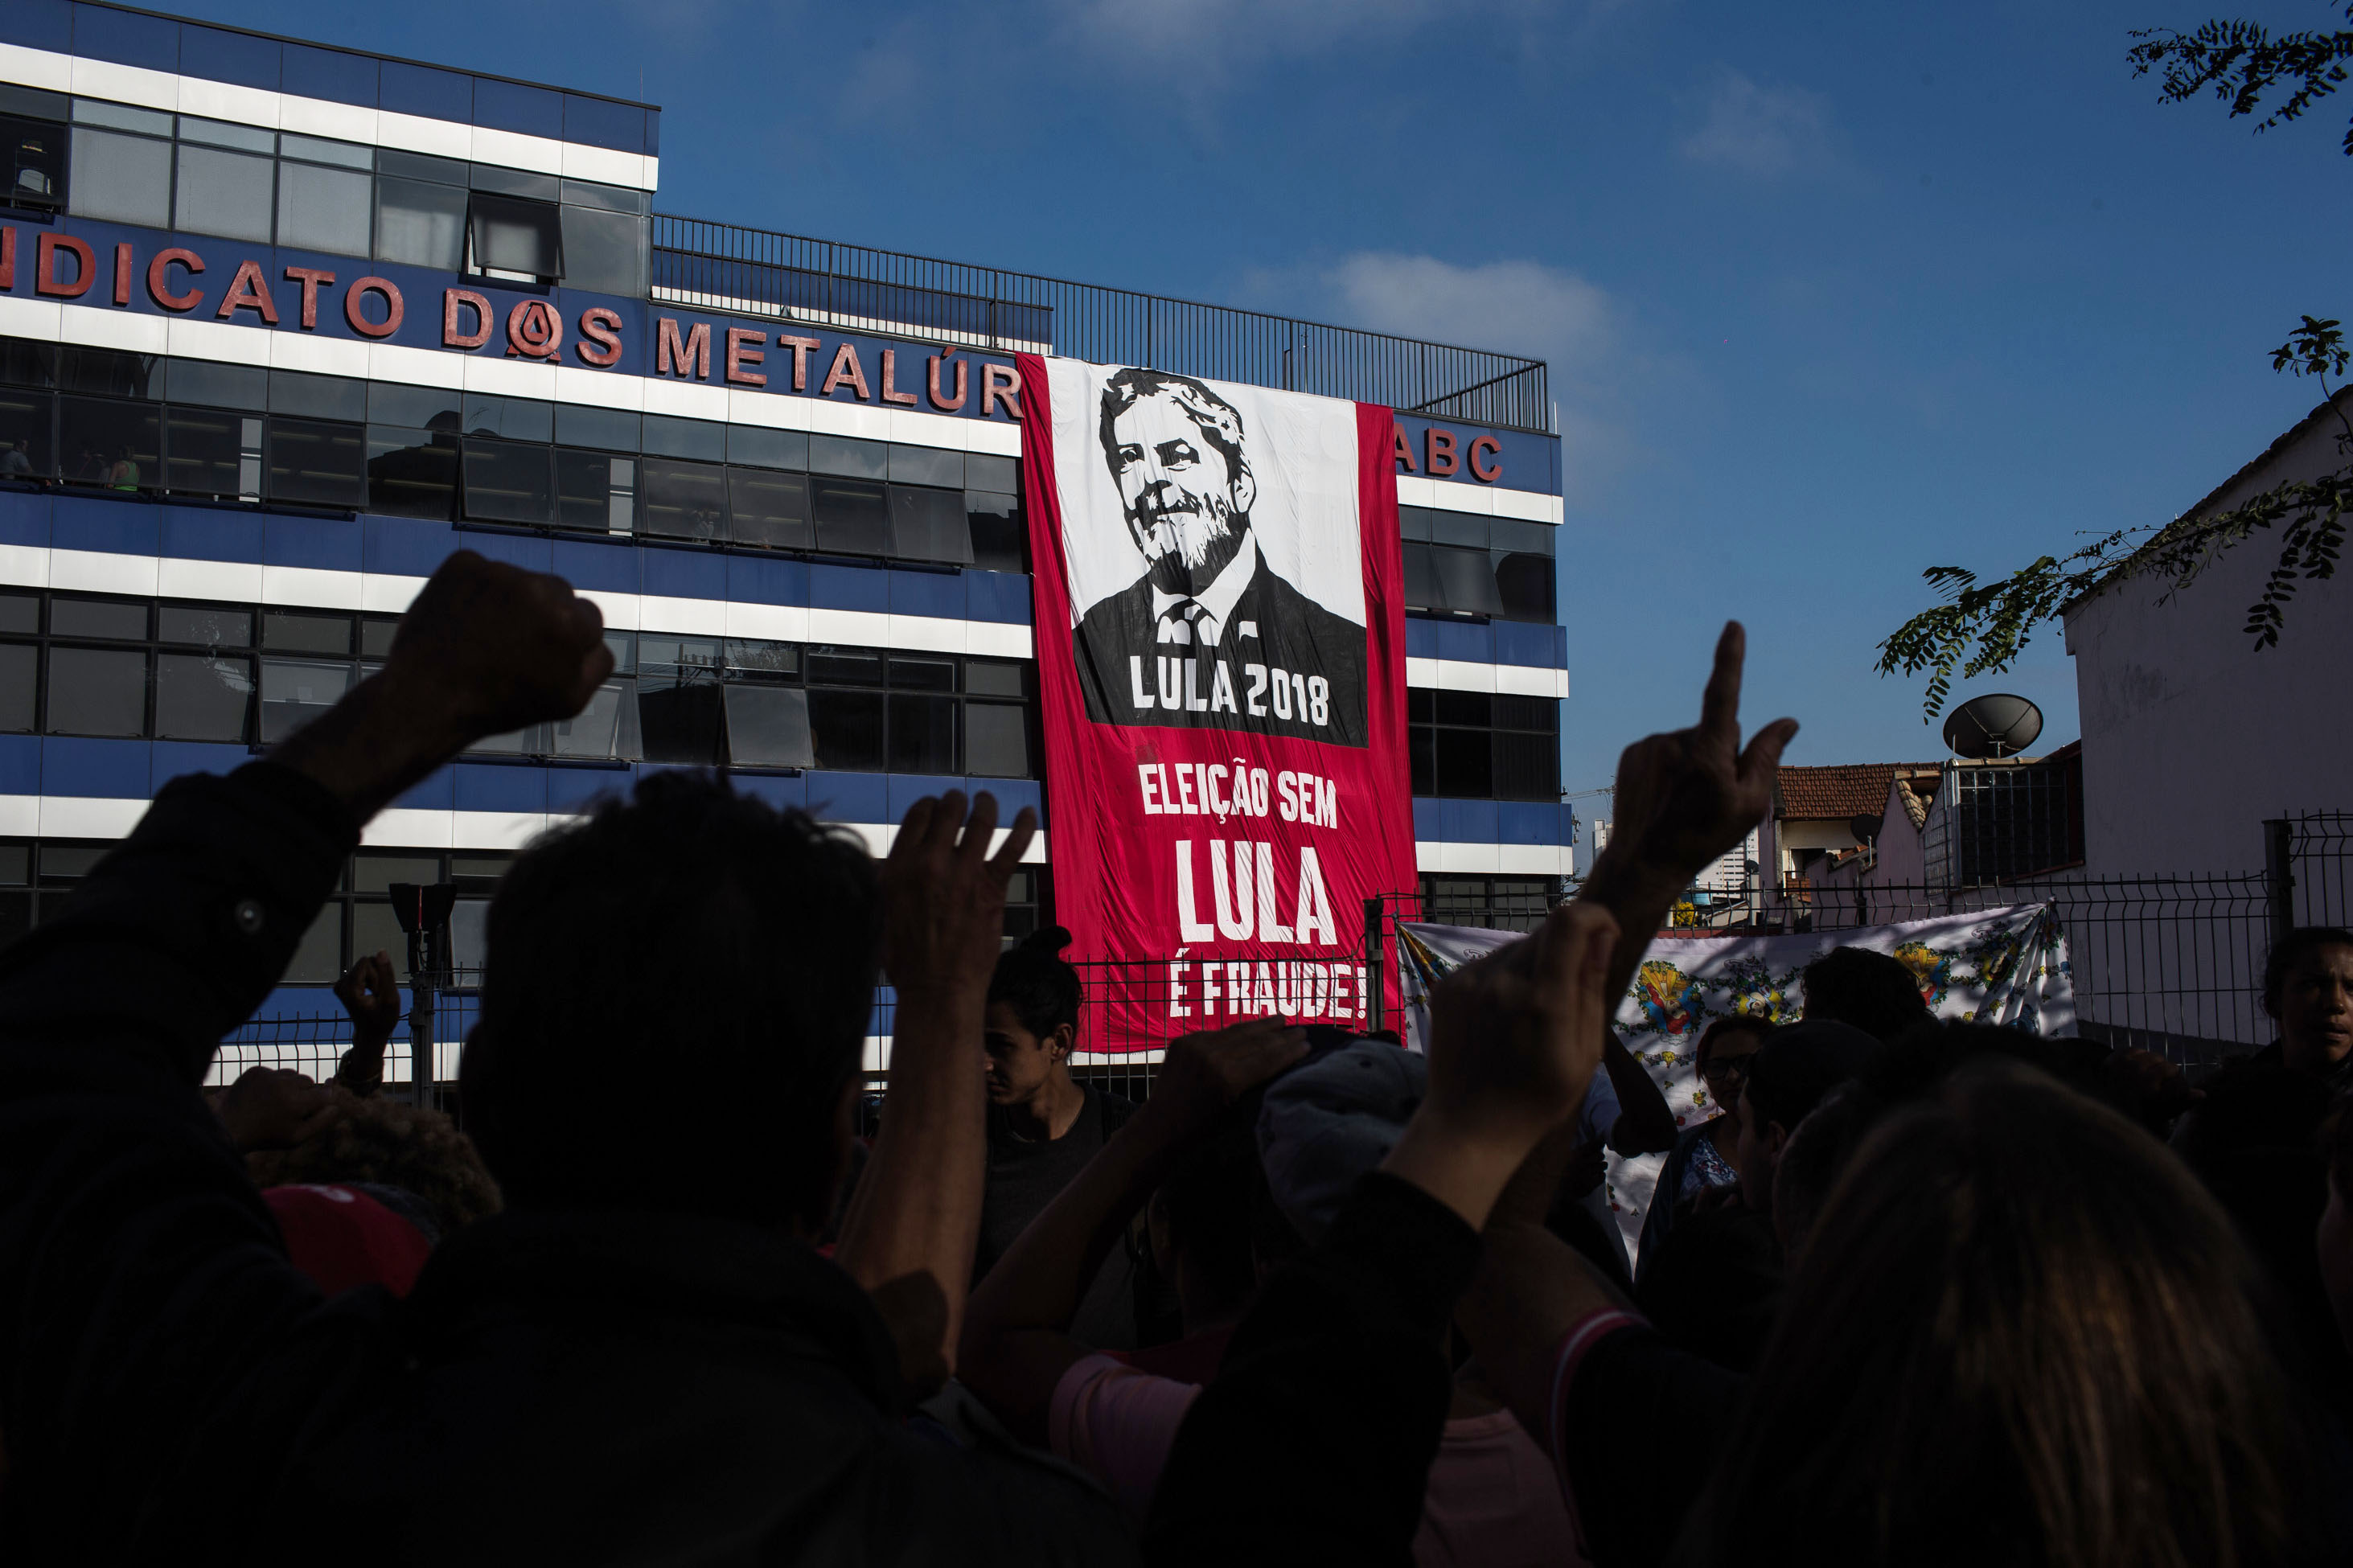 6 April 2018: Supporters of former Brazilian President Luiz Inacio Lula da Silva gather in front of the headquarters of the Metalworkers' Union while awaiting Lula's speech in Sao Bernardo do Campo, Brazil. (Photograph by Victor Moriyama/Getty Images)